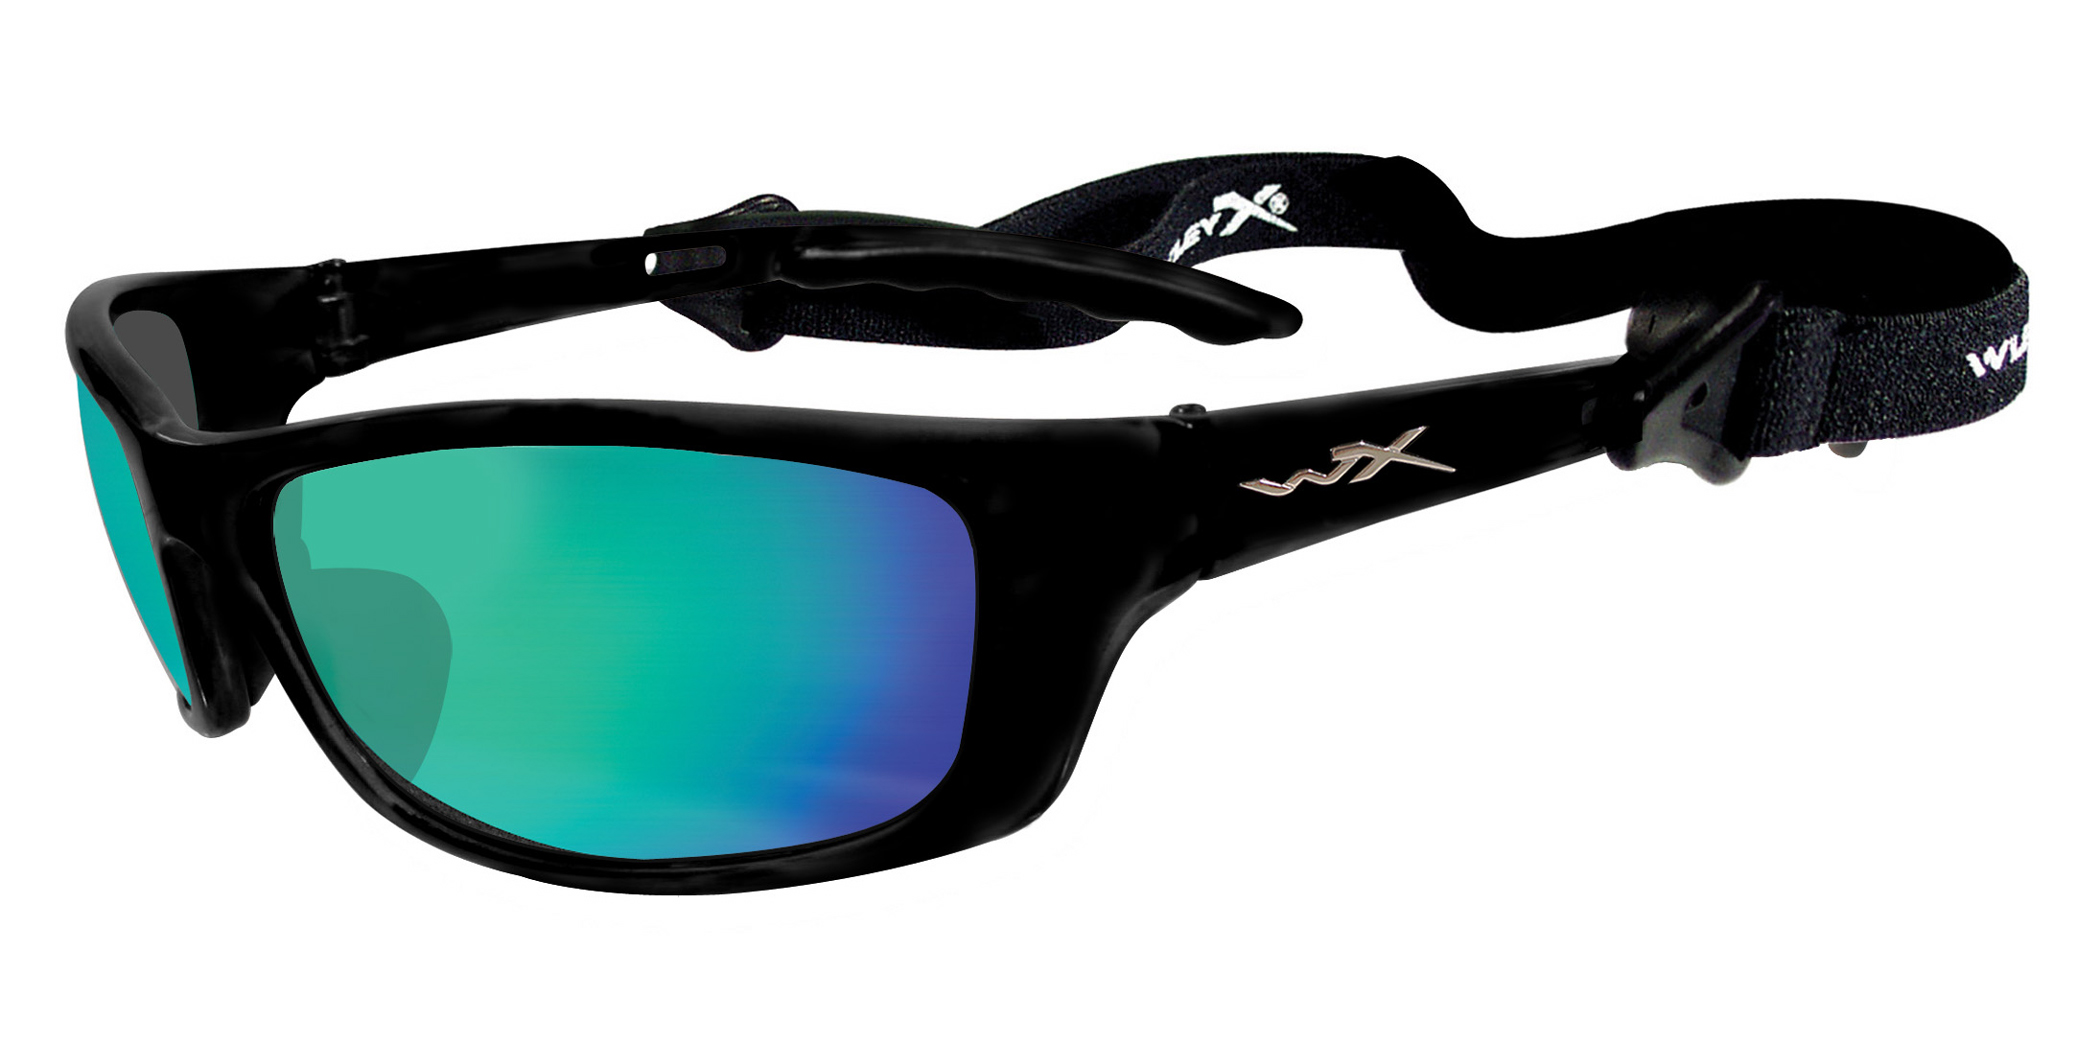 666b6556c98 Wiley X Fishing Sunglasses - Images Lobster and Fish